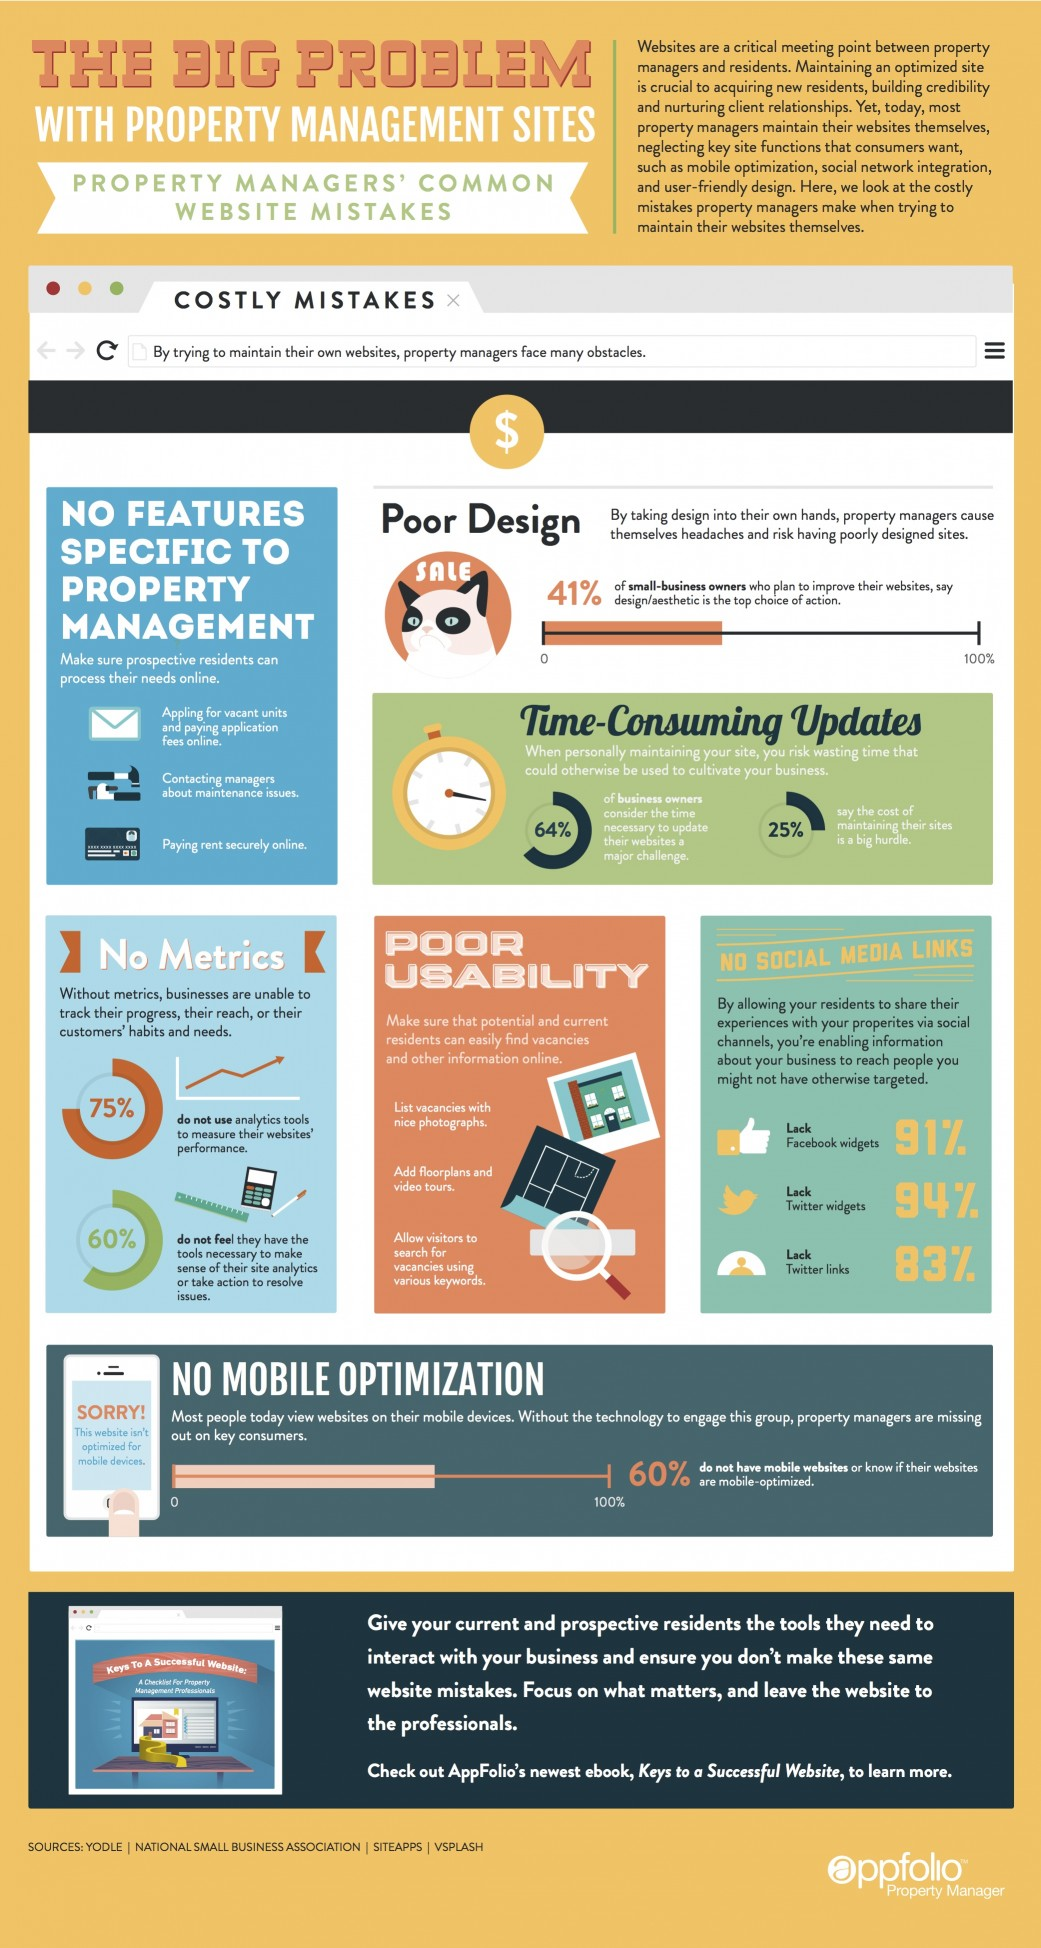 Property Management Website Mistakes - Infographic